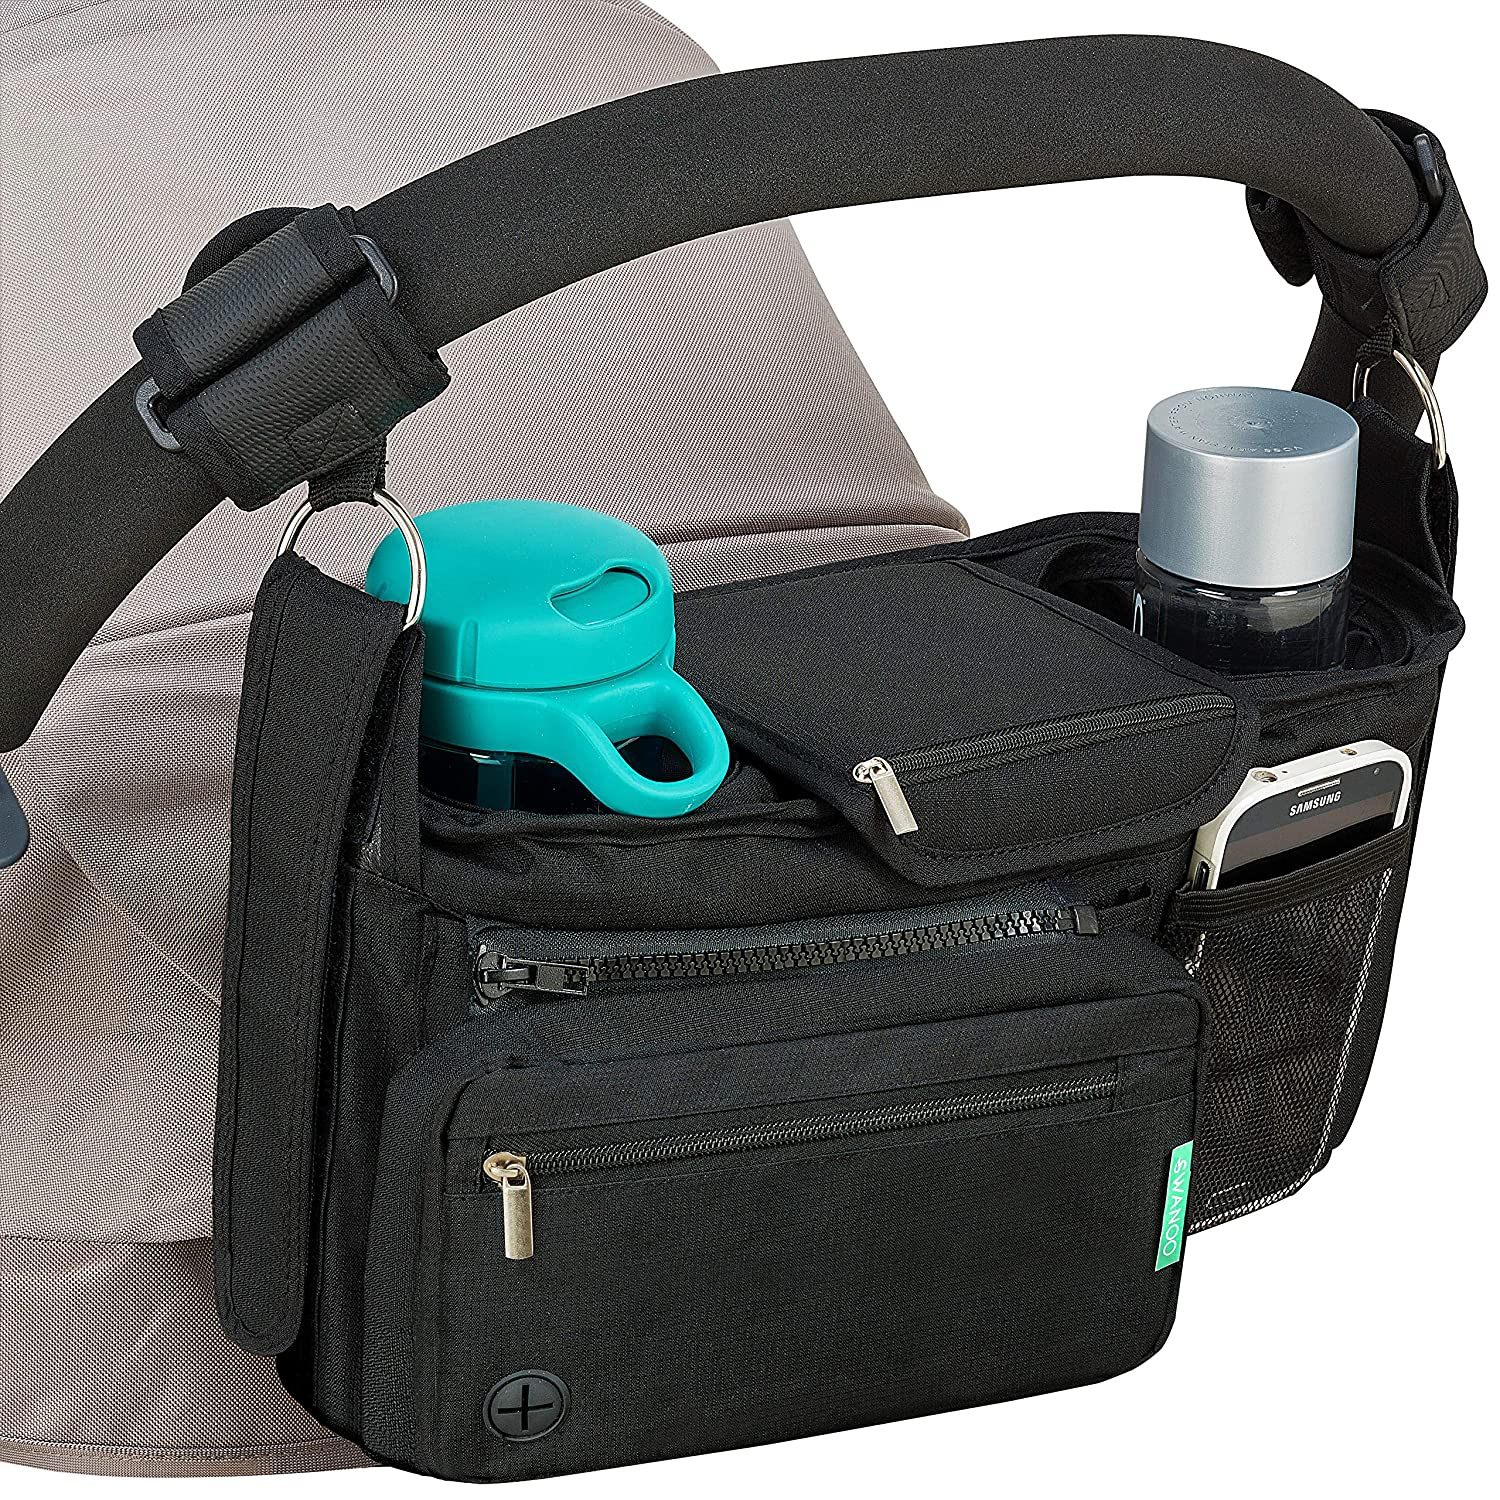 STROLLER ORGANIZER with cup holders NON-SKID strap FITS ALL strollers, Compact Mirror, Storage for Phone, Wallet, Toys,